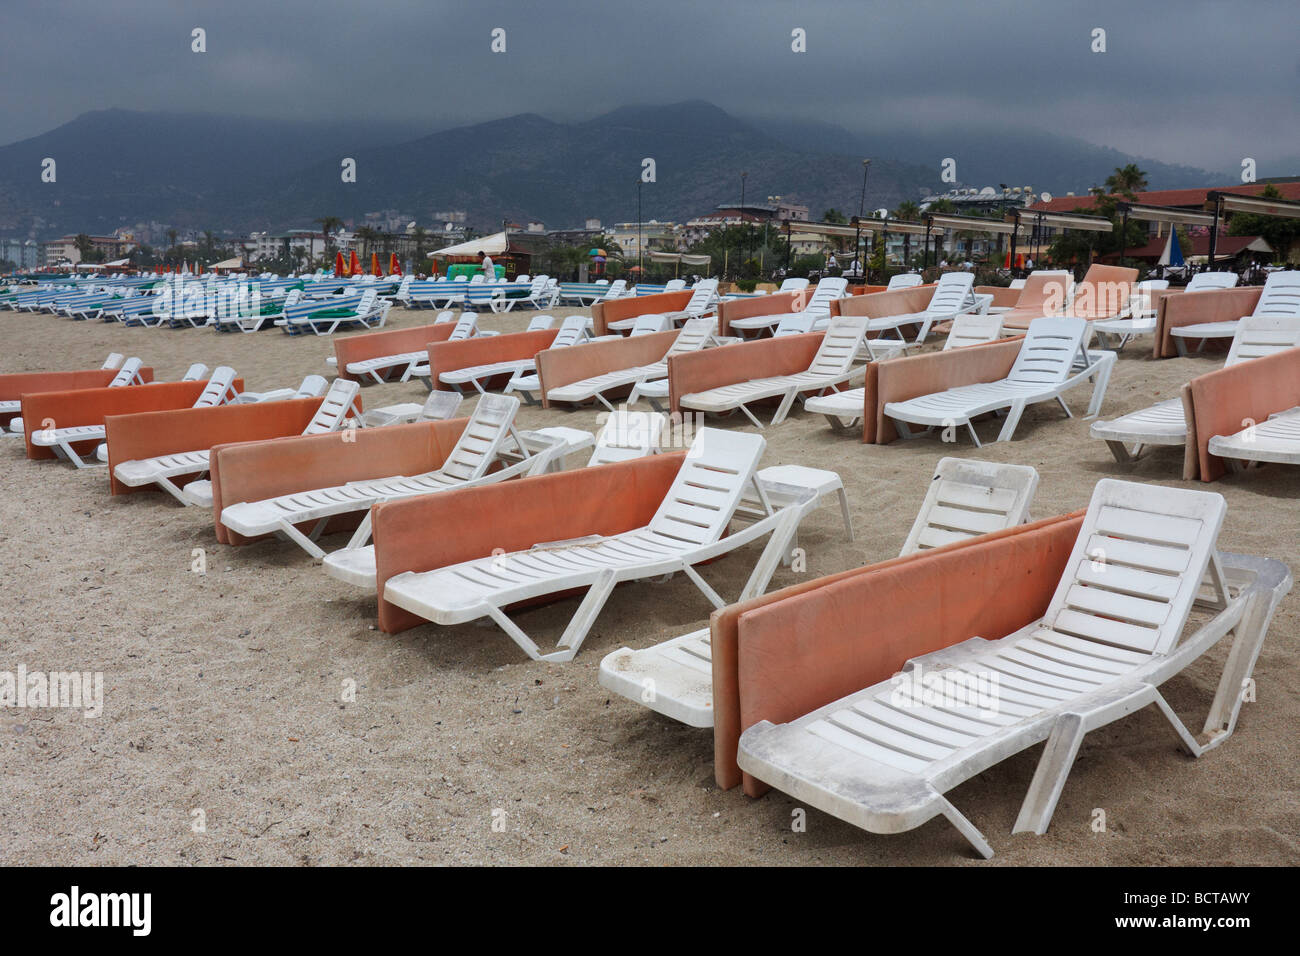 Beach chairs silhouetted against a pink sky of an evening sunset at Alanya - Stock Image